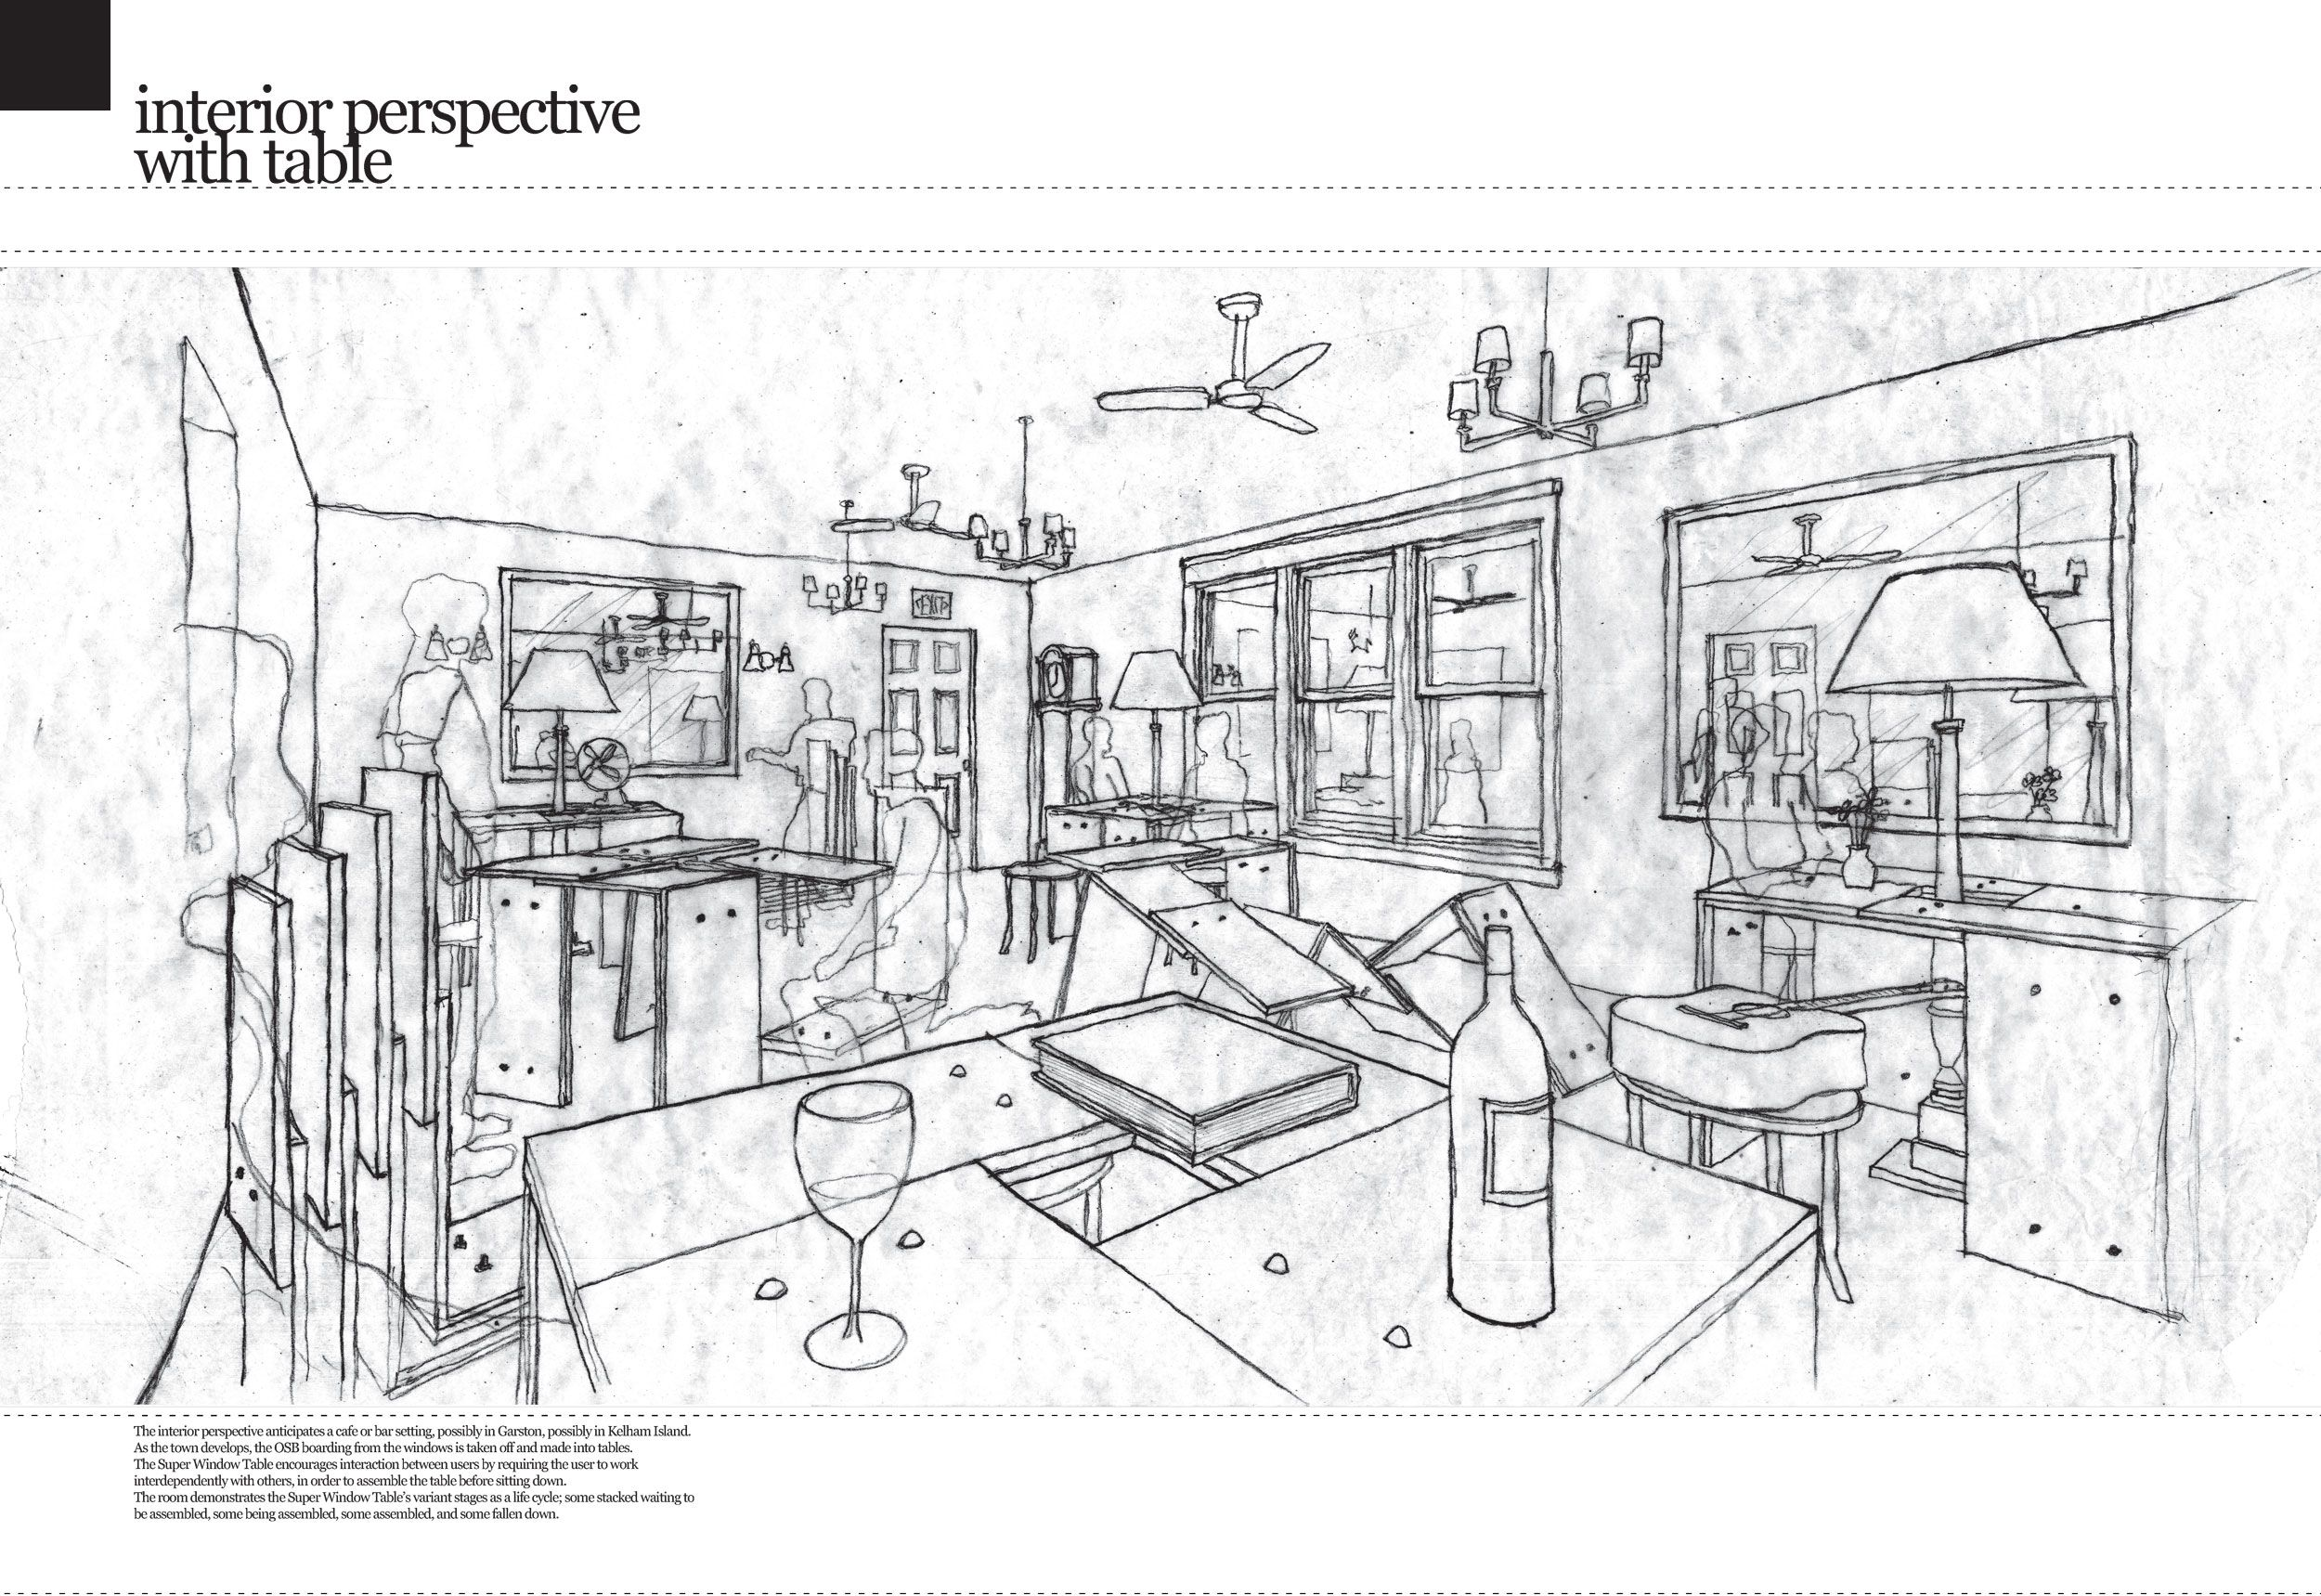 Pin by Steven Bross on Perspective Drawings